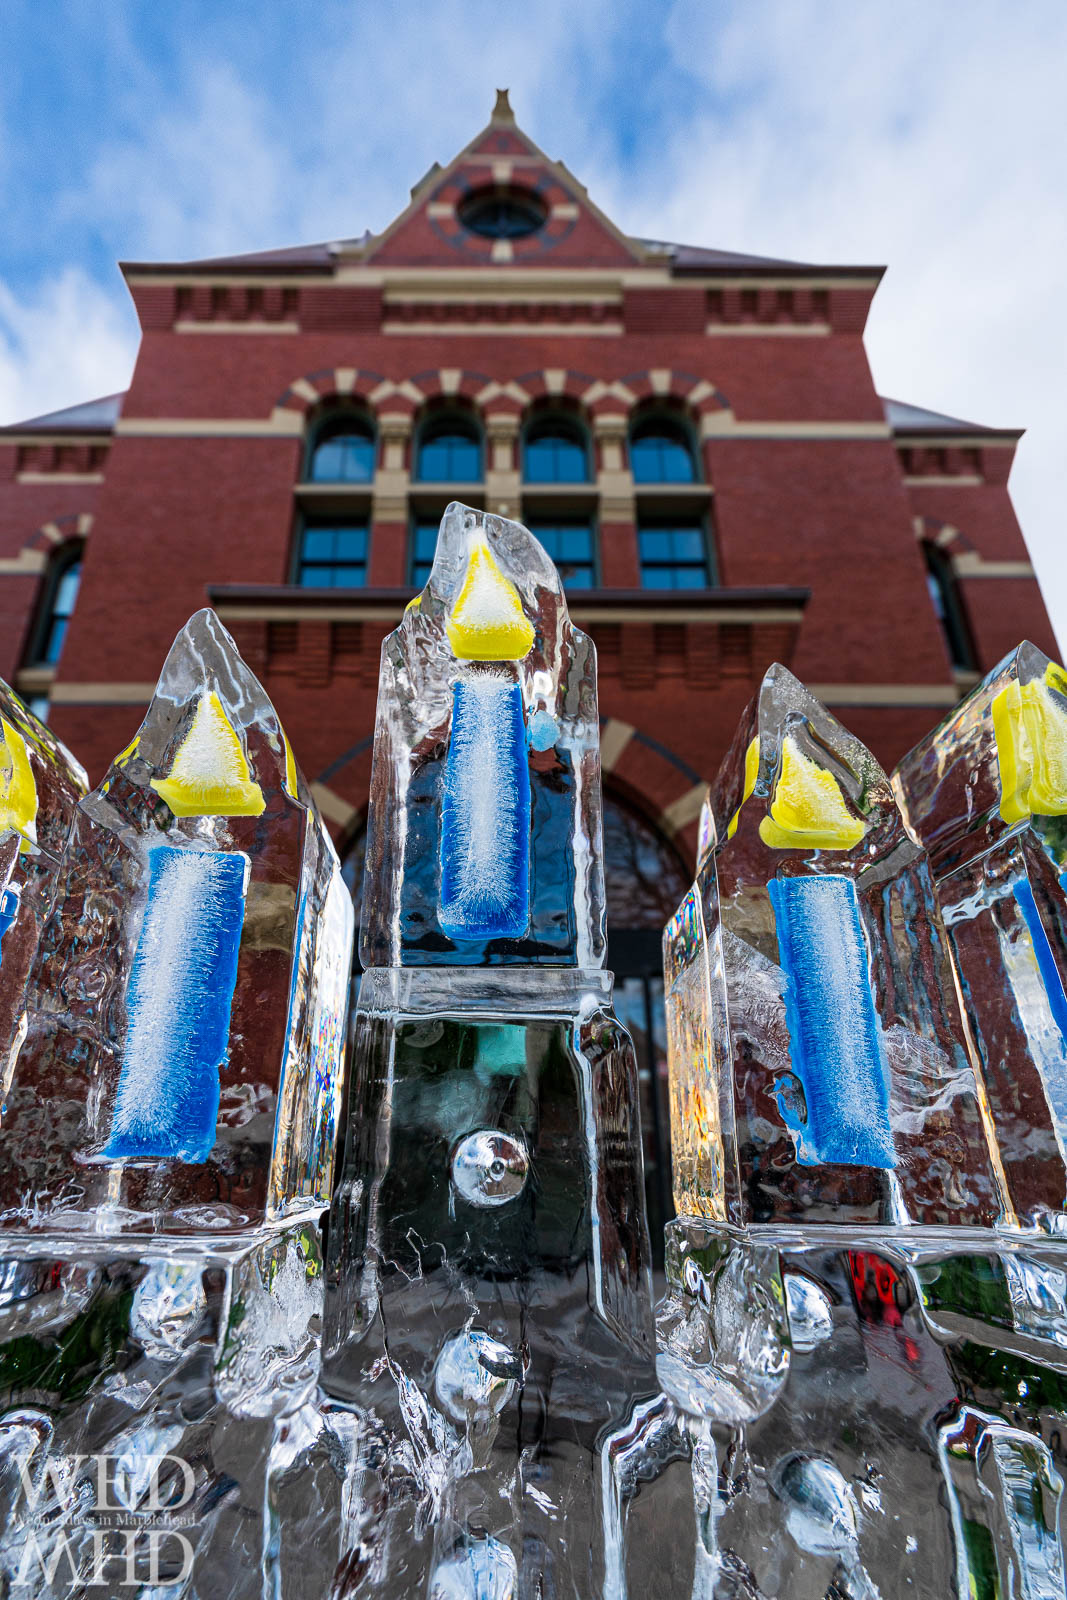 Hanukkah has been called the Festival of Lights and this ice sculpture captures this perfectly with Abbot Hall as backdrop